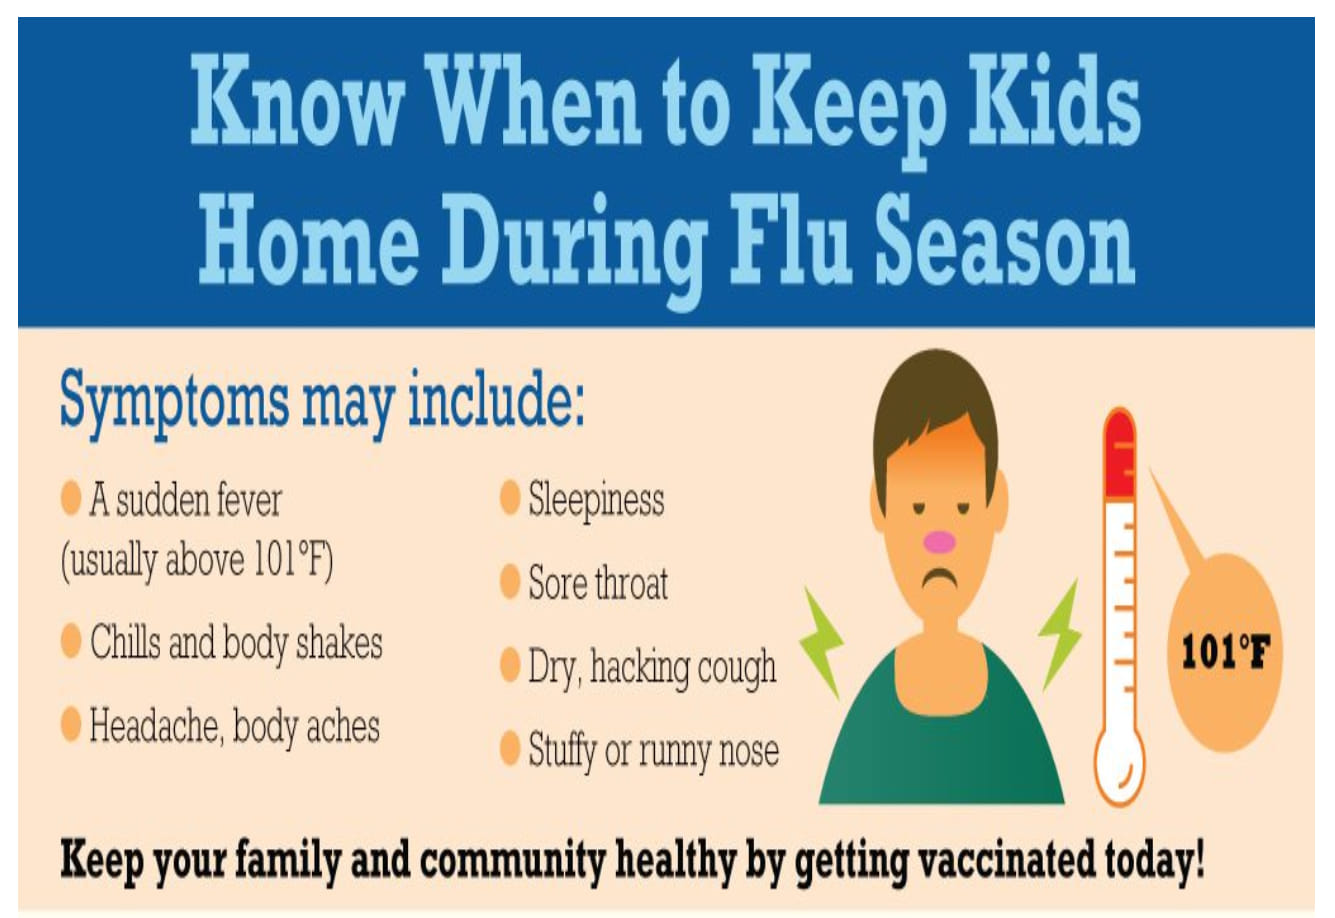 Know when to Keep Kids Home during Flu Season.  Symptoms may include: A sudden Fever, usually over 101F; Chills and body shakes; Headache, body aches; Sleepiness; Sore throat; Dry, hacking cough; Stuffy or runny nose; Keep your family and community healthy by getting vaccinated today